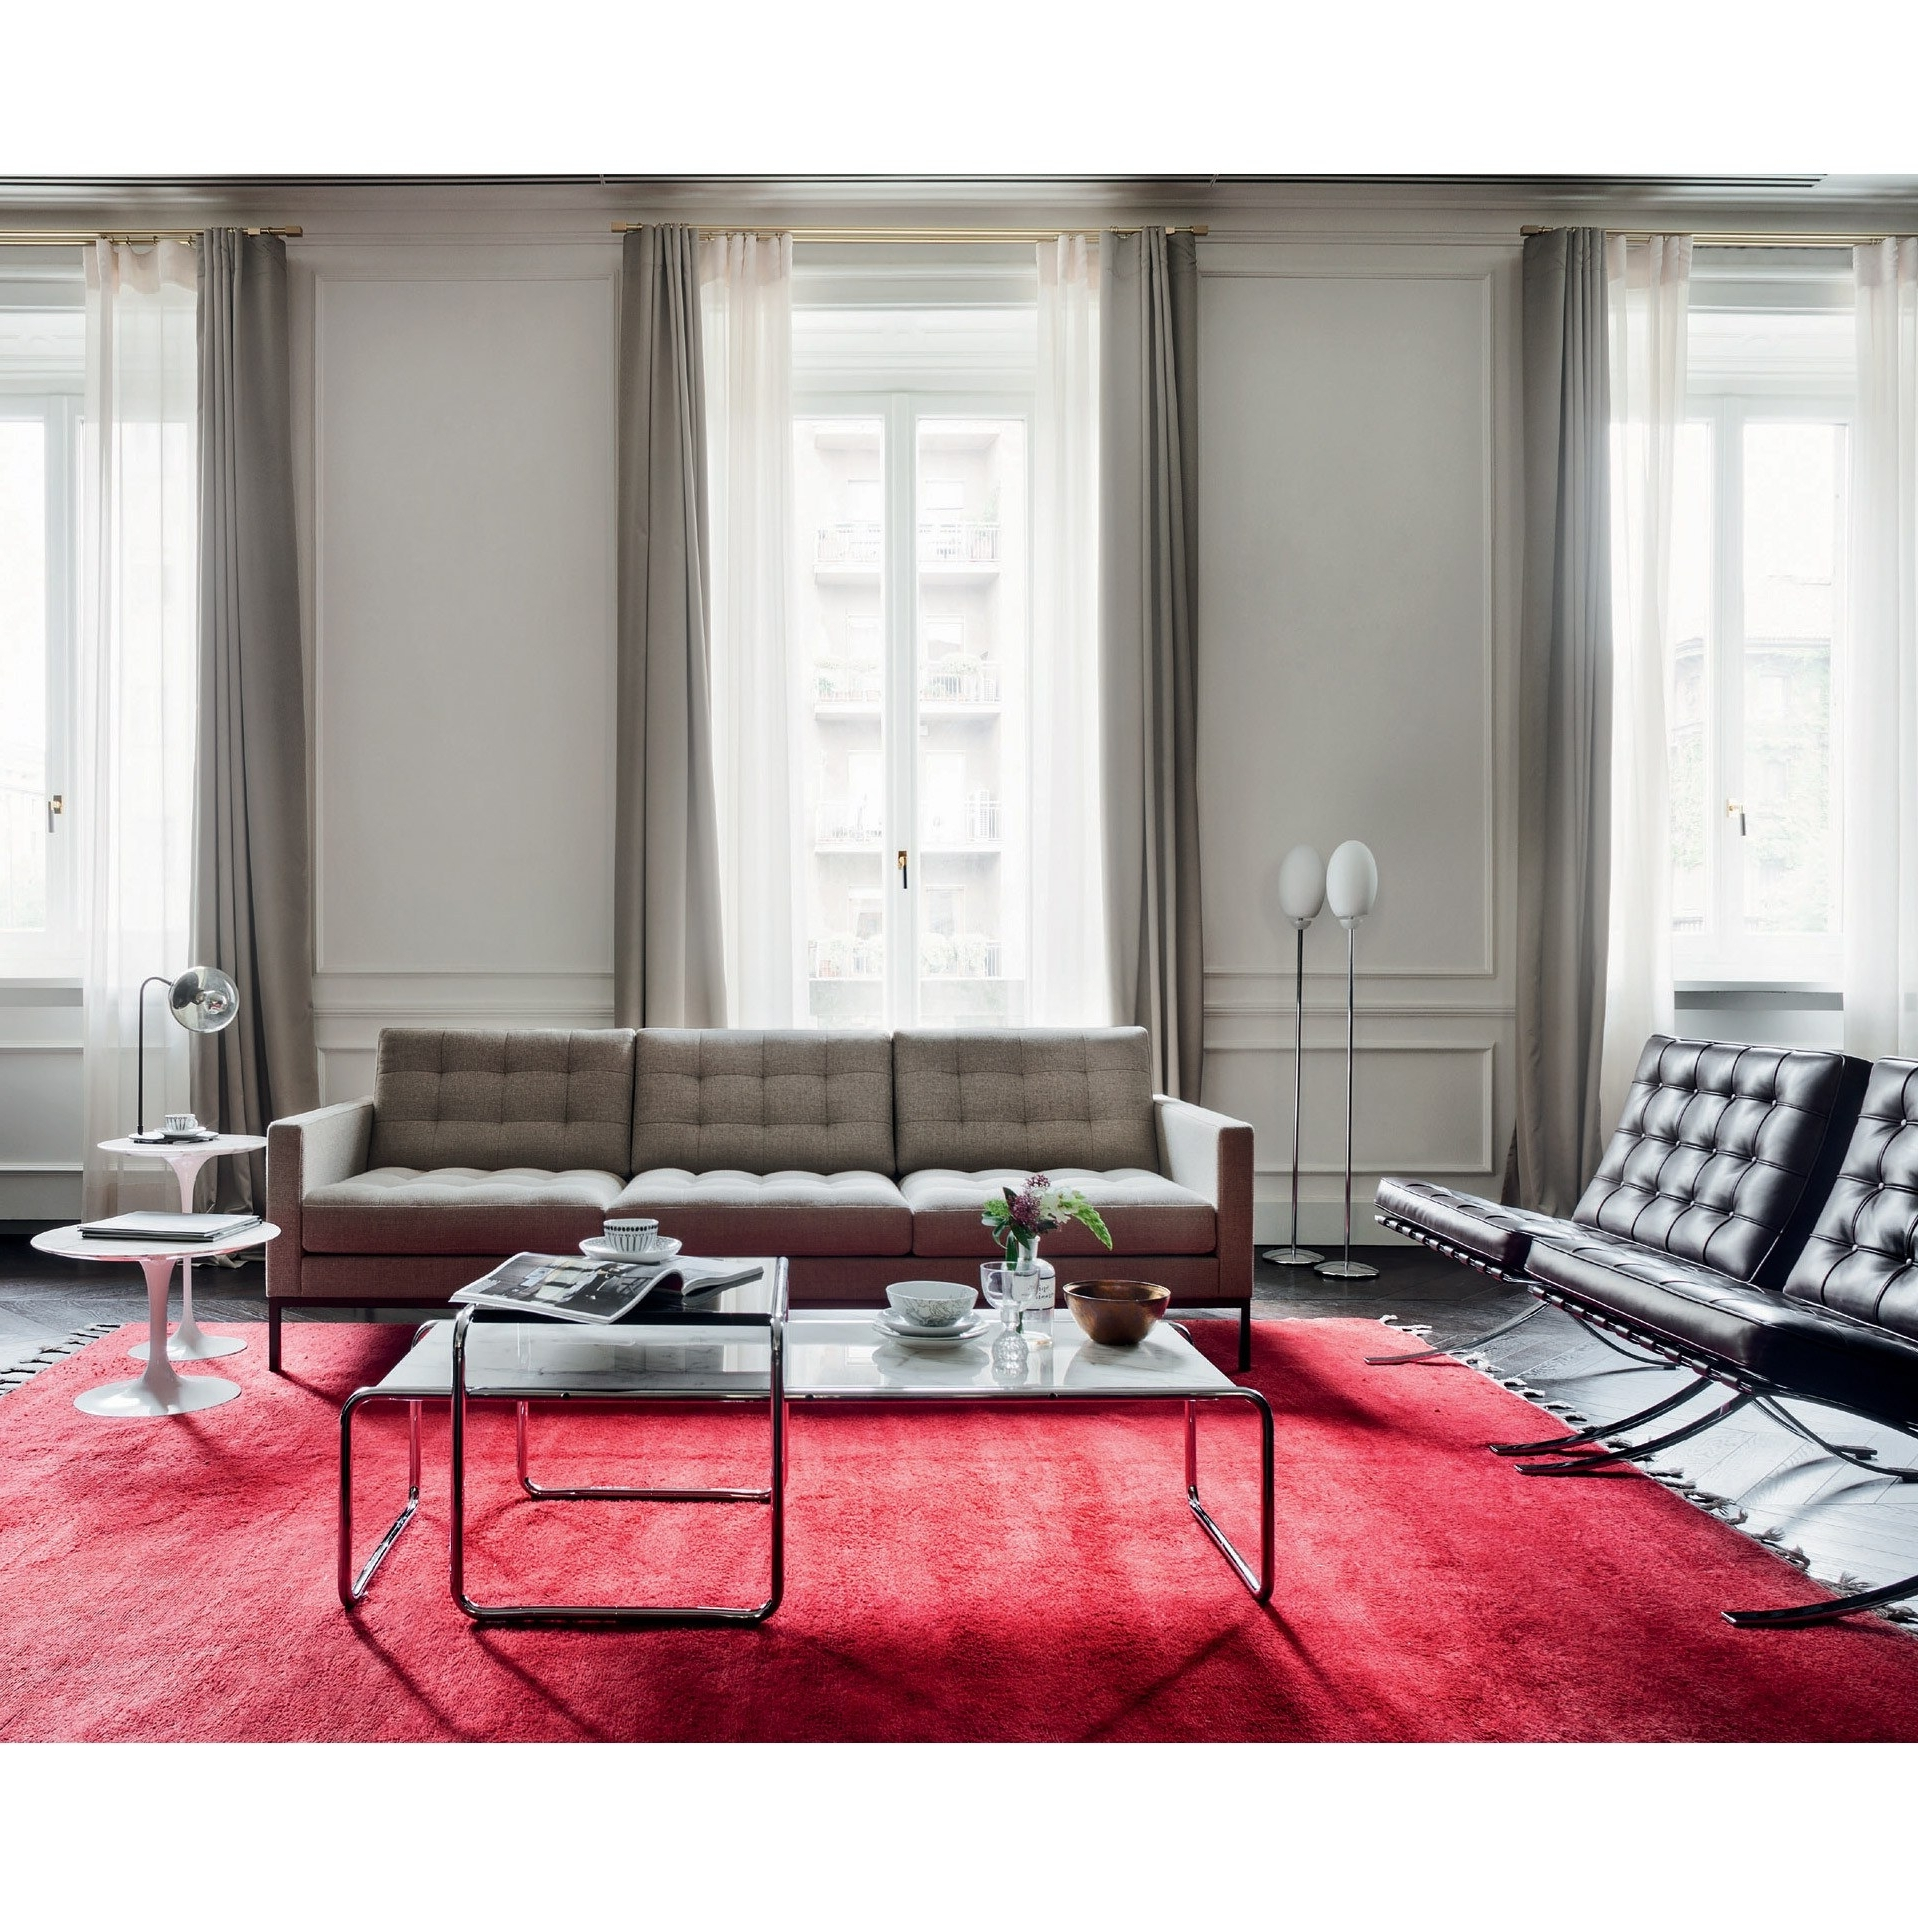 Florence Knoll 'relax' Sofa (Gallery 12 of 20)